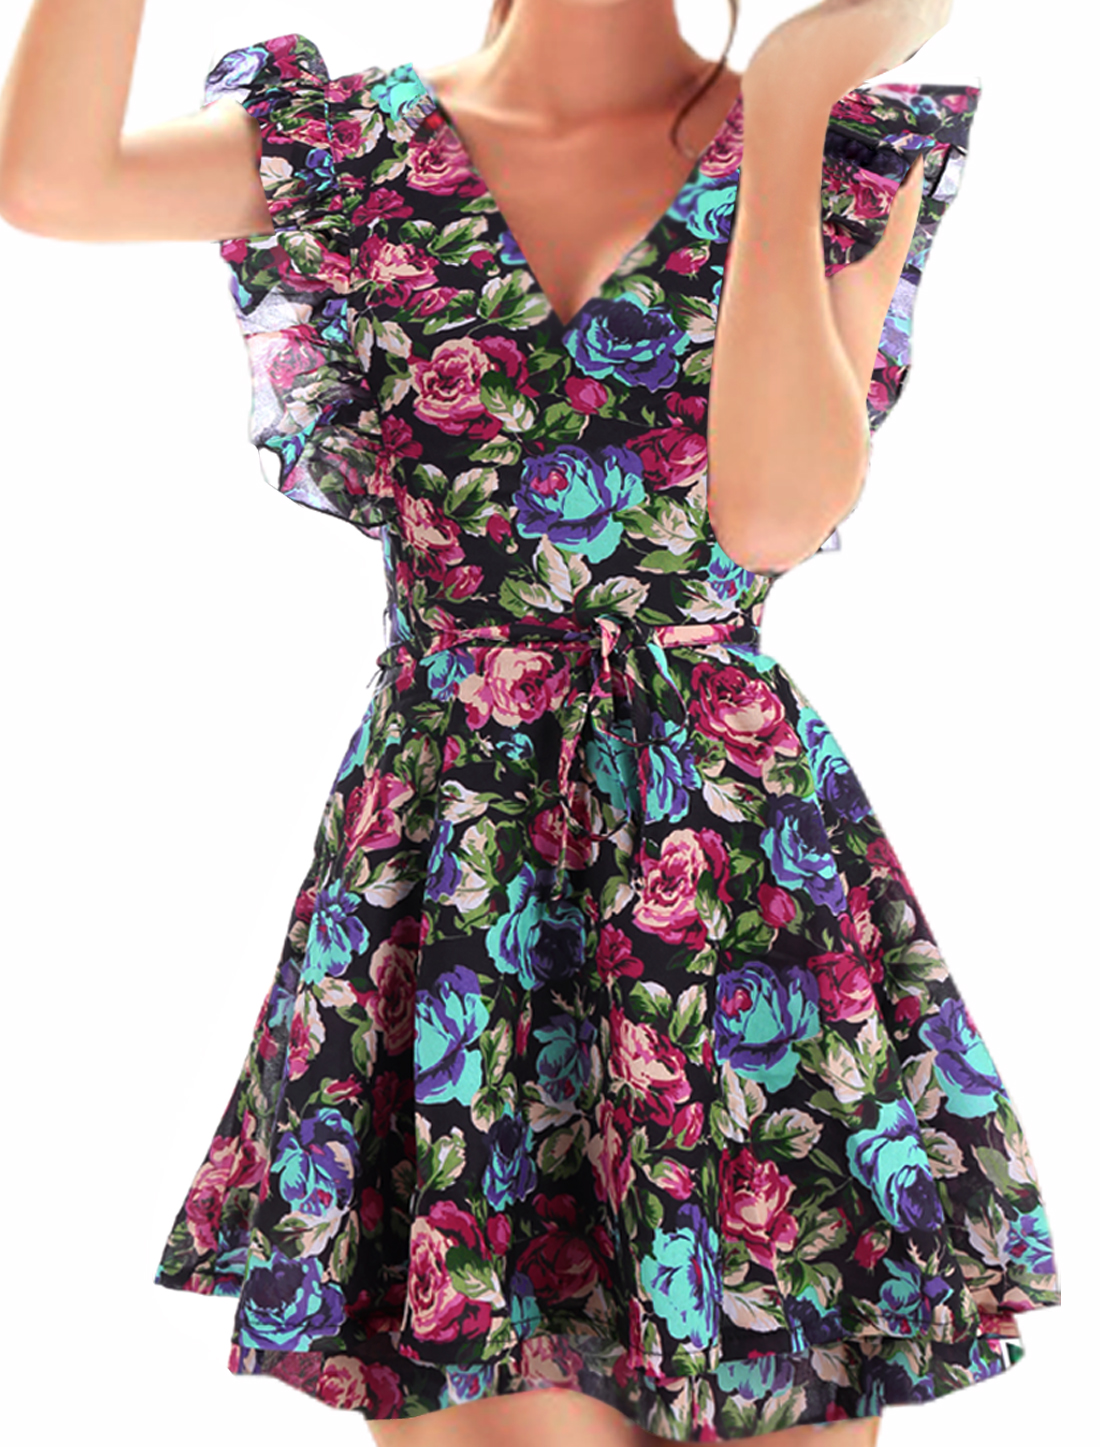 Ladies Multicolor Double V Neck Floral Prints Tiered Self Tie String Dress L